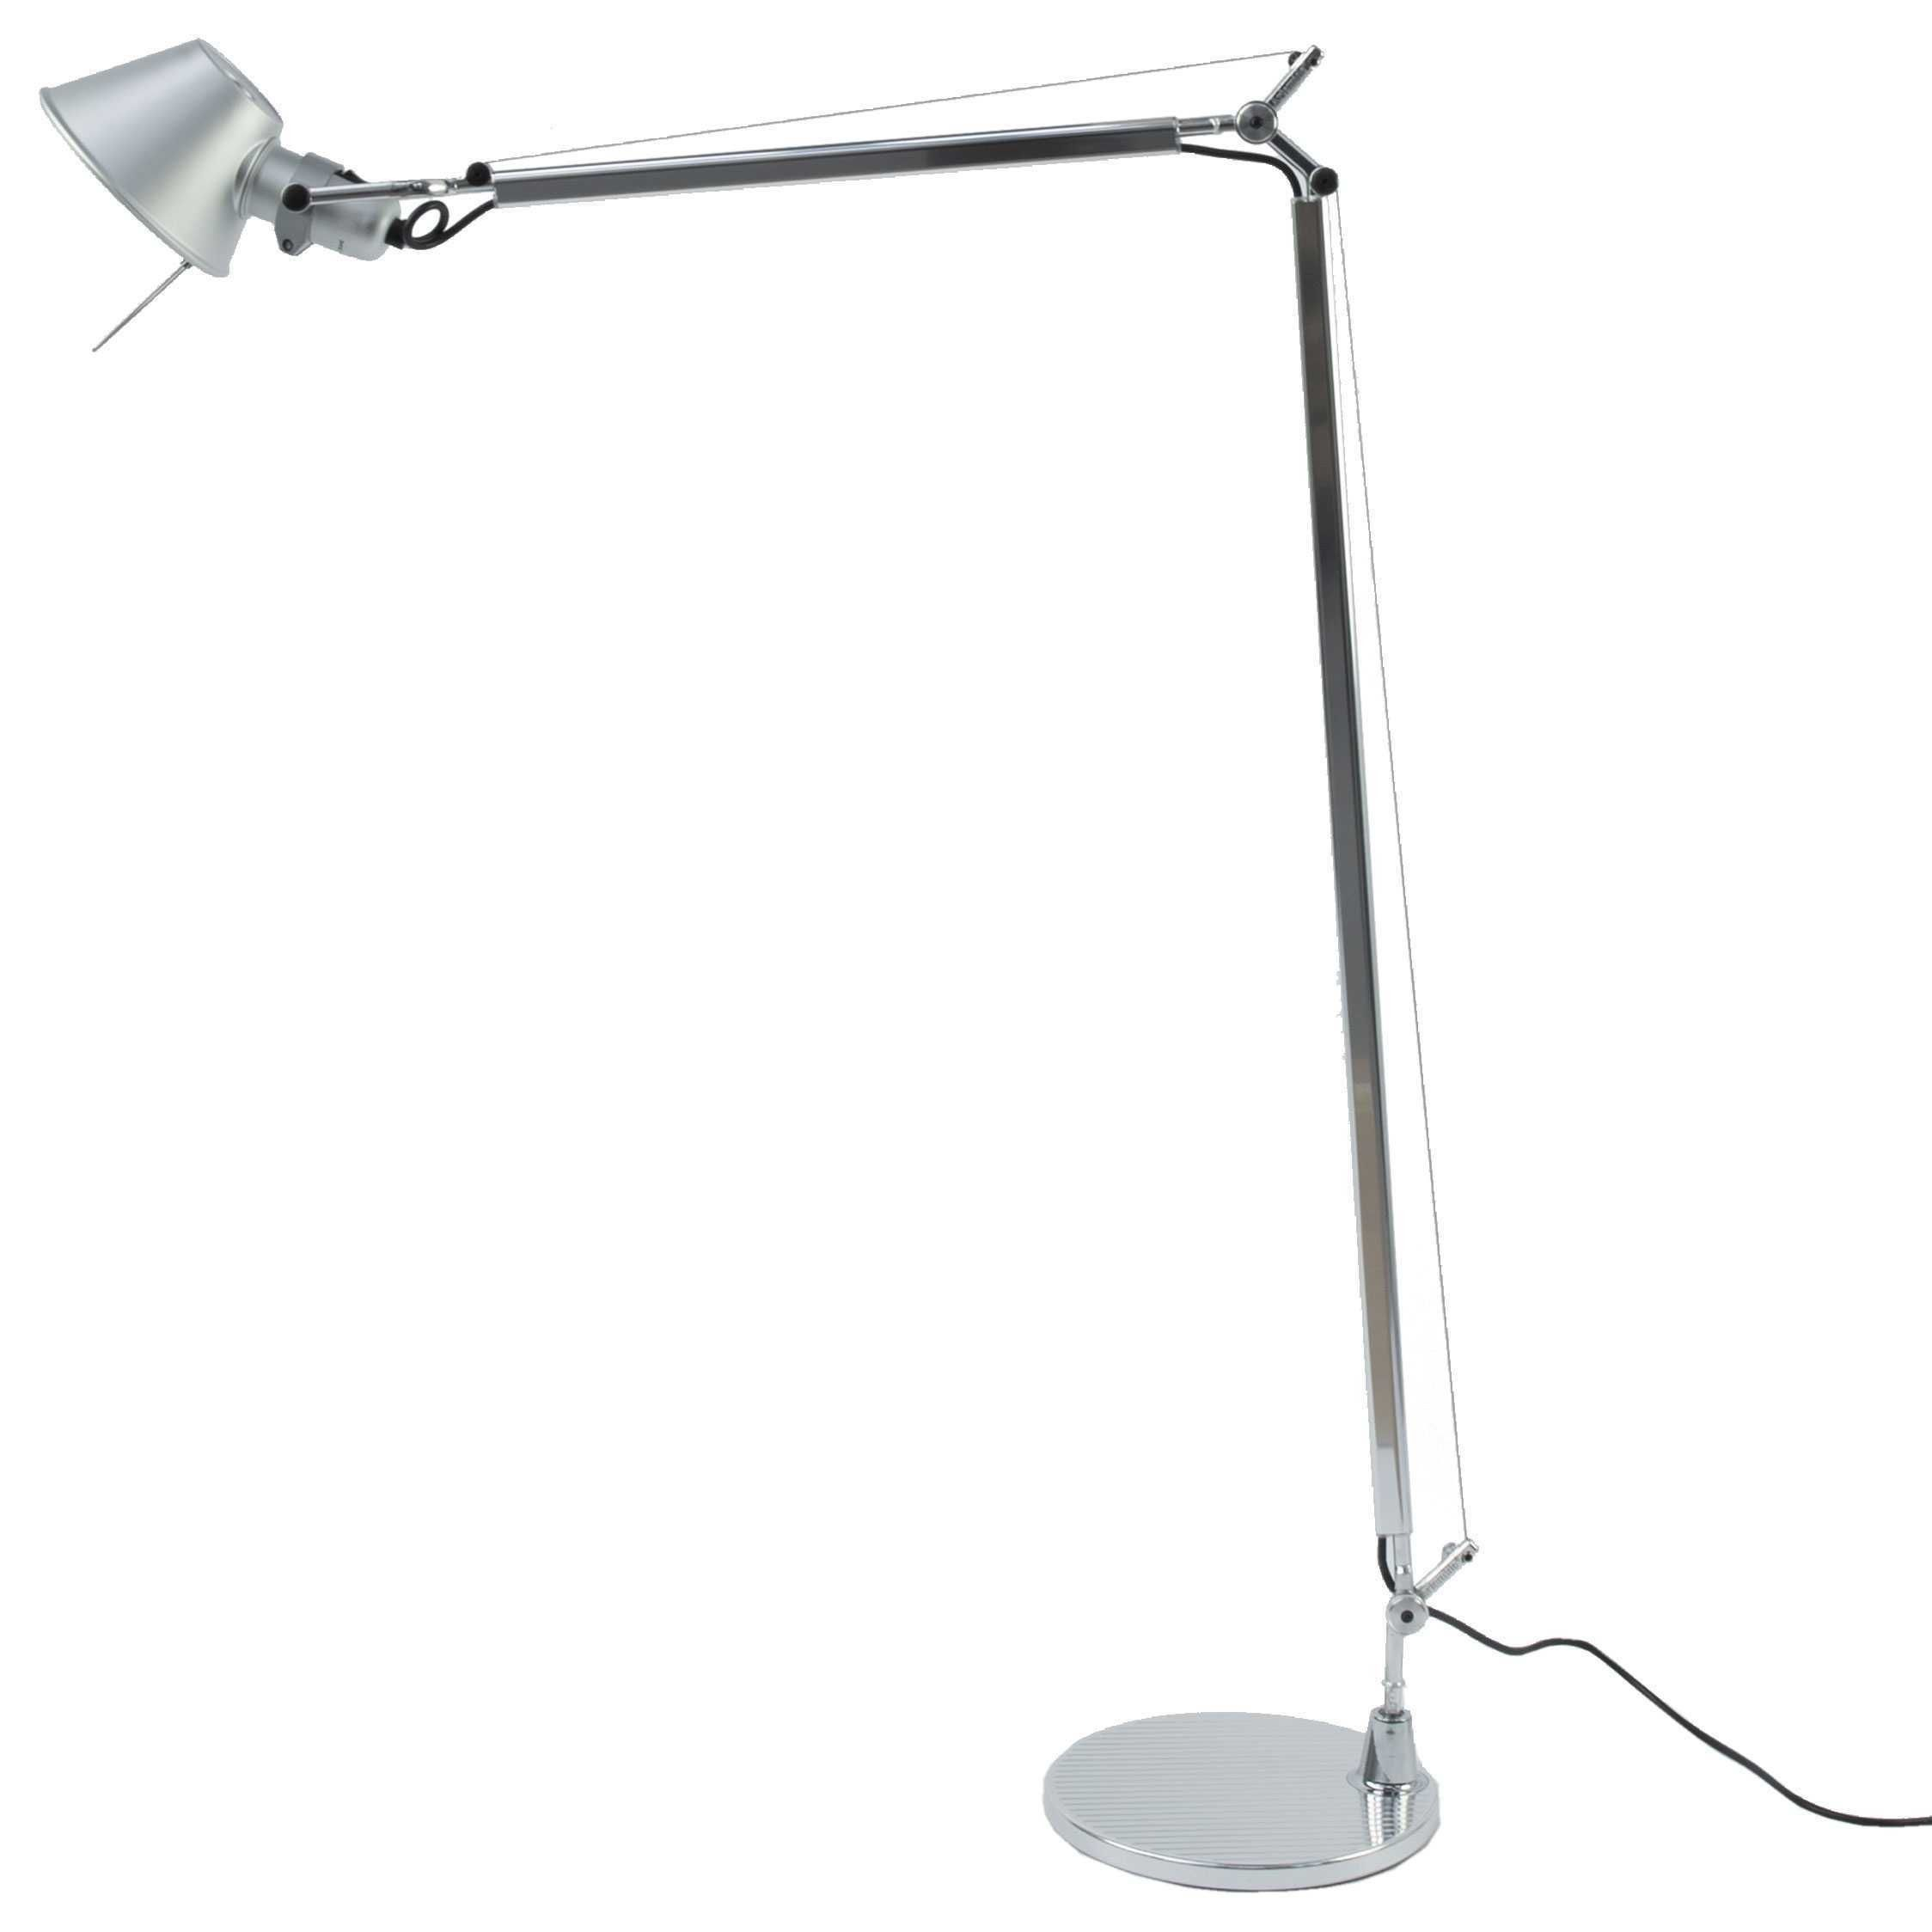 artemide tolomeo lettura vloerlamp led 2700k warm wit. Black Bedroom Furniture Sets. Home Design Ideas